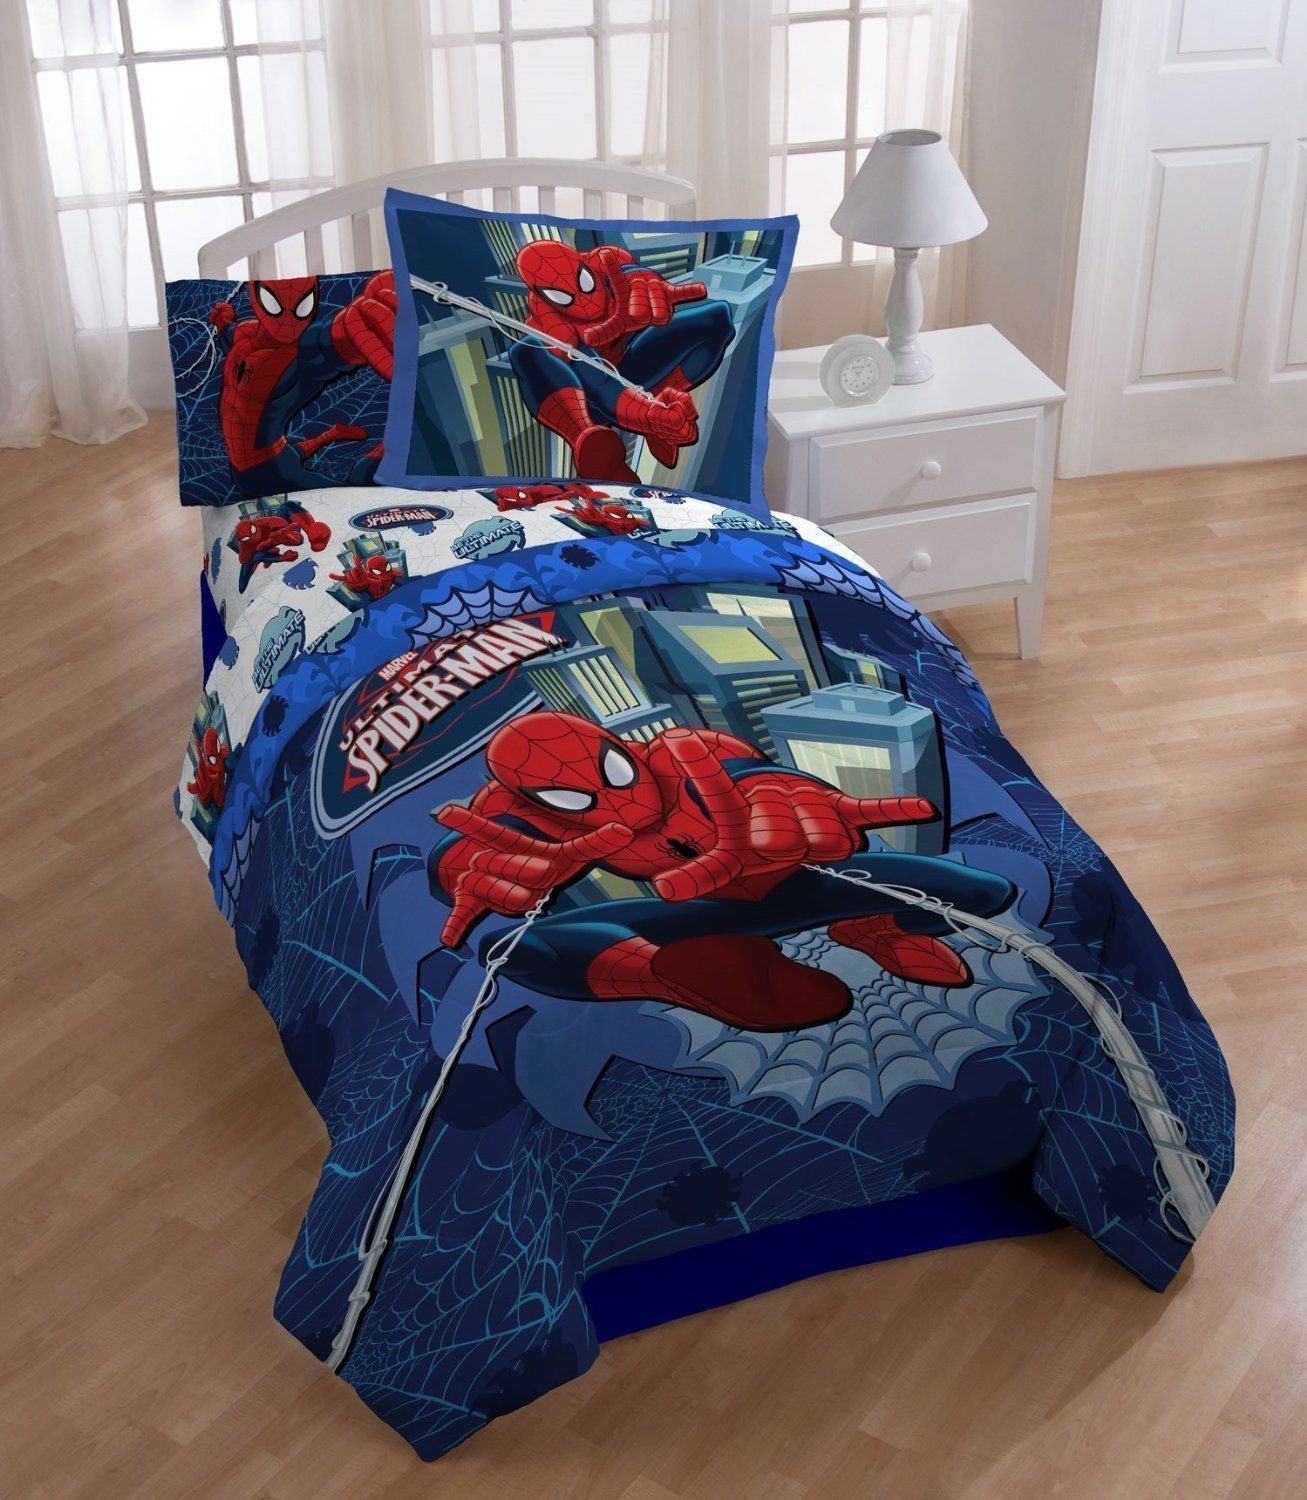 ultron age the any avenger fans and household avengers we an blankets in under blog found comforter sheets of s your well why care sleep movie not